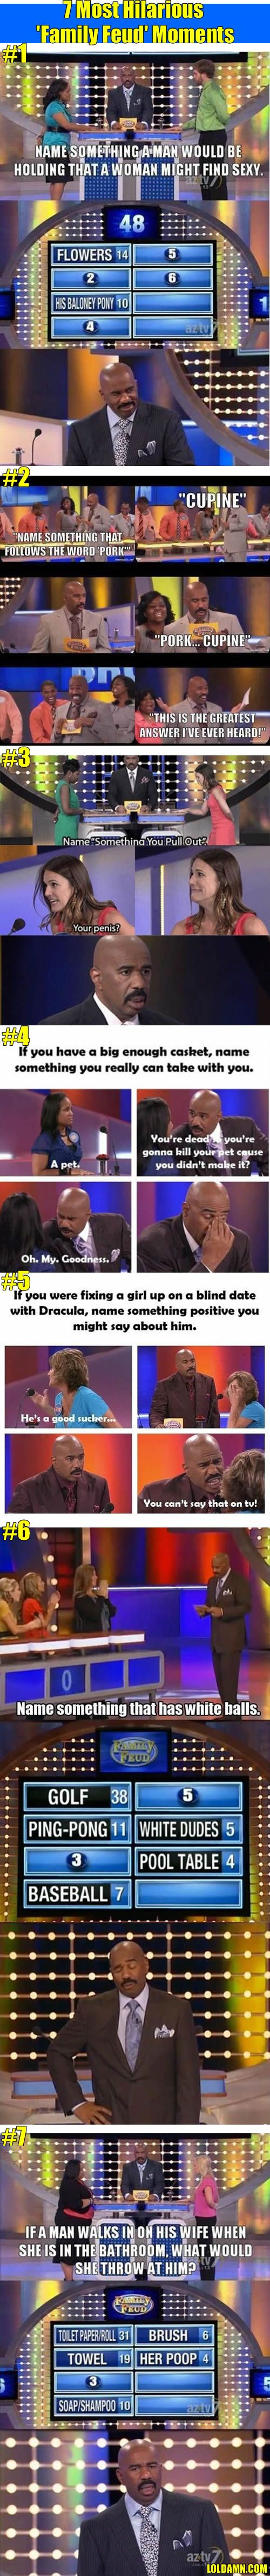 7 Most Hilarious 'Family Feud' Moments. |LOL, Damn! Funny and Awesome pictures.